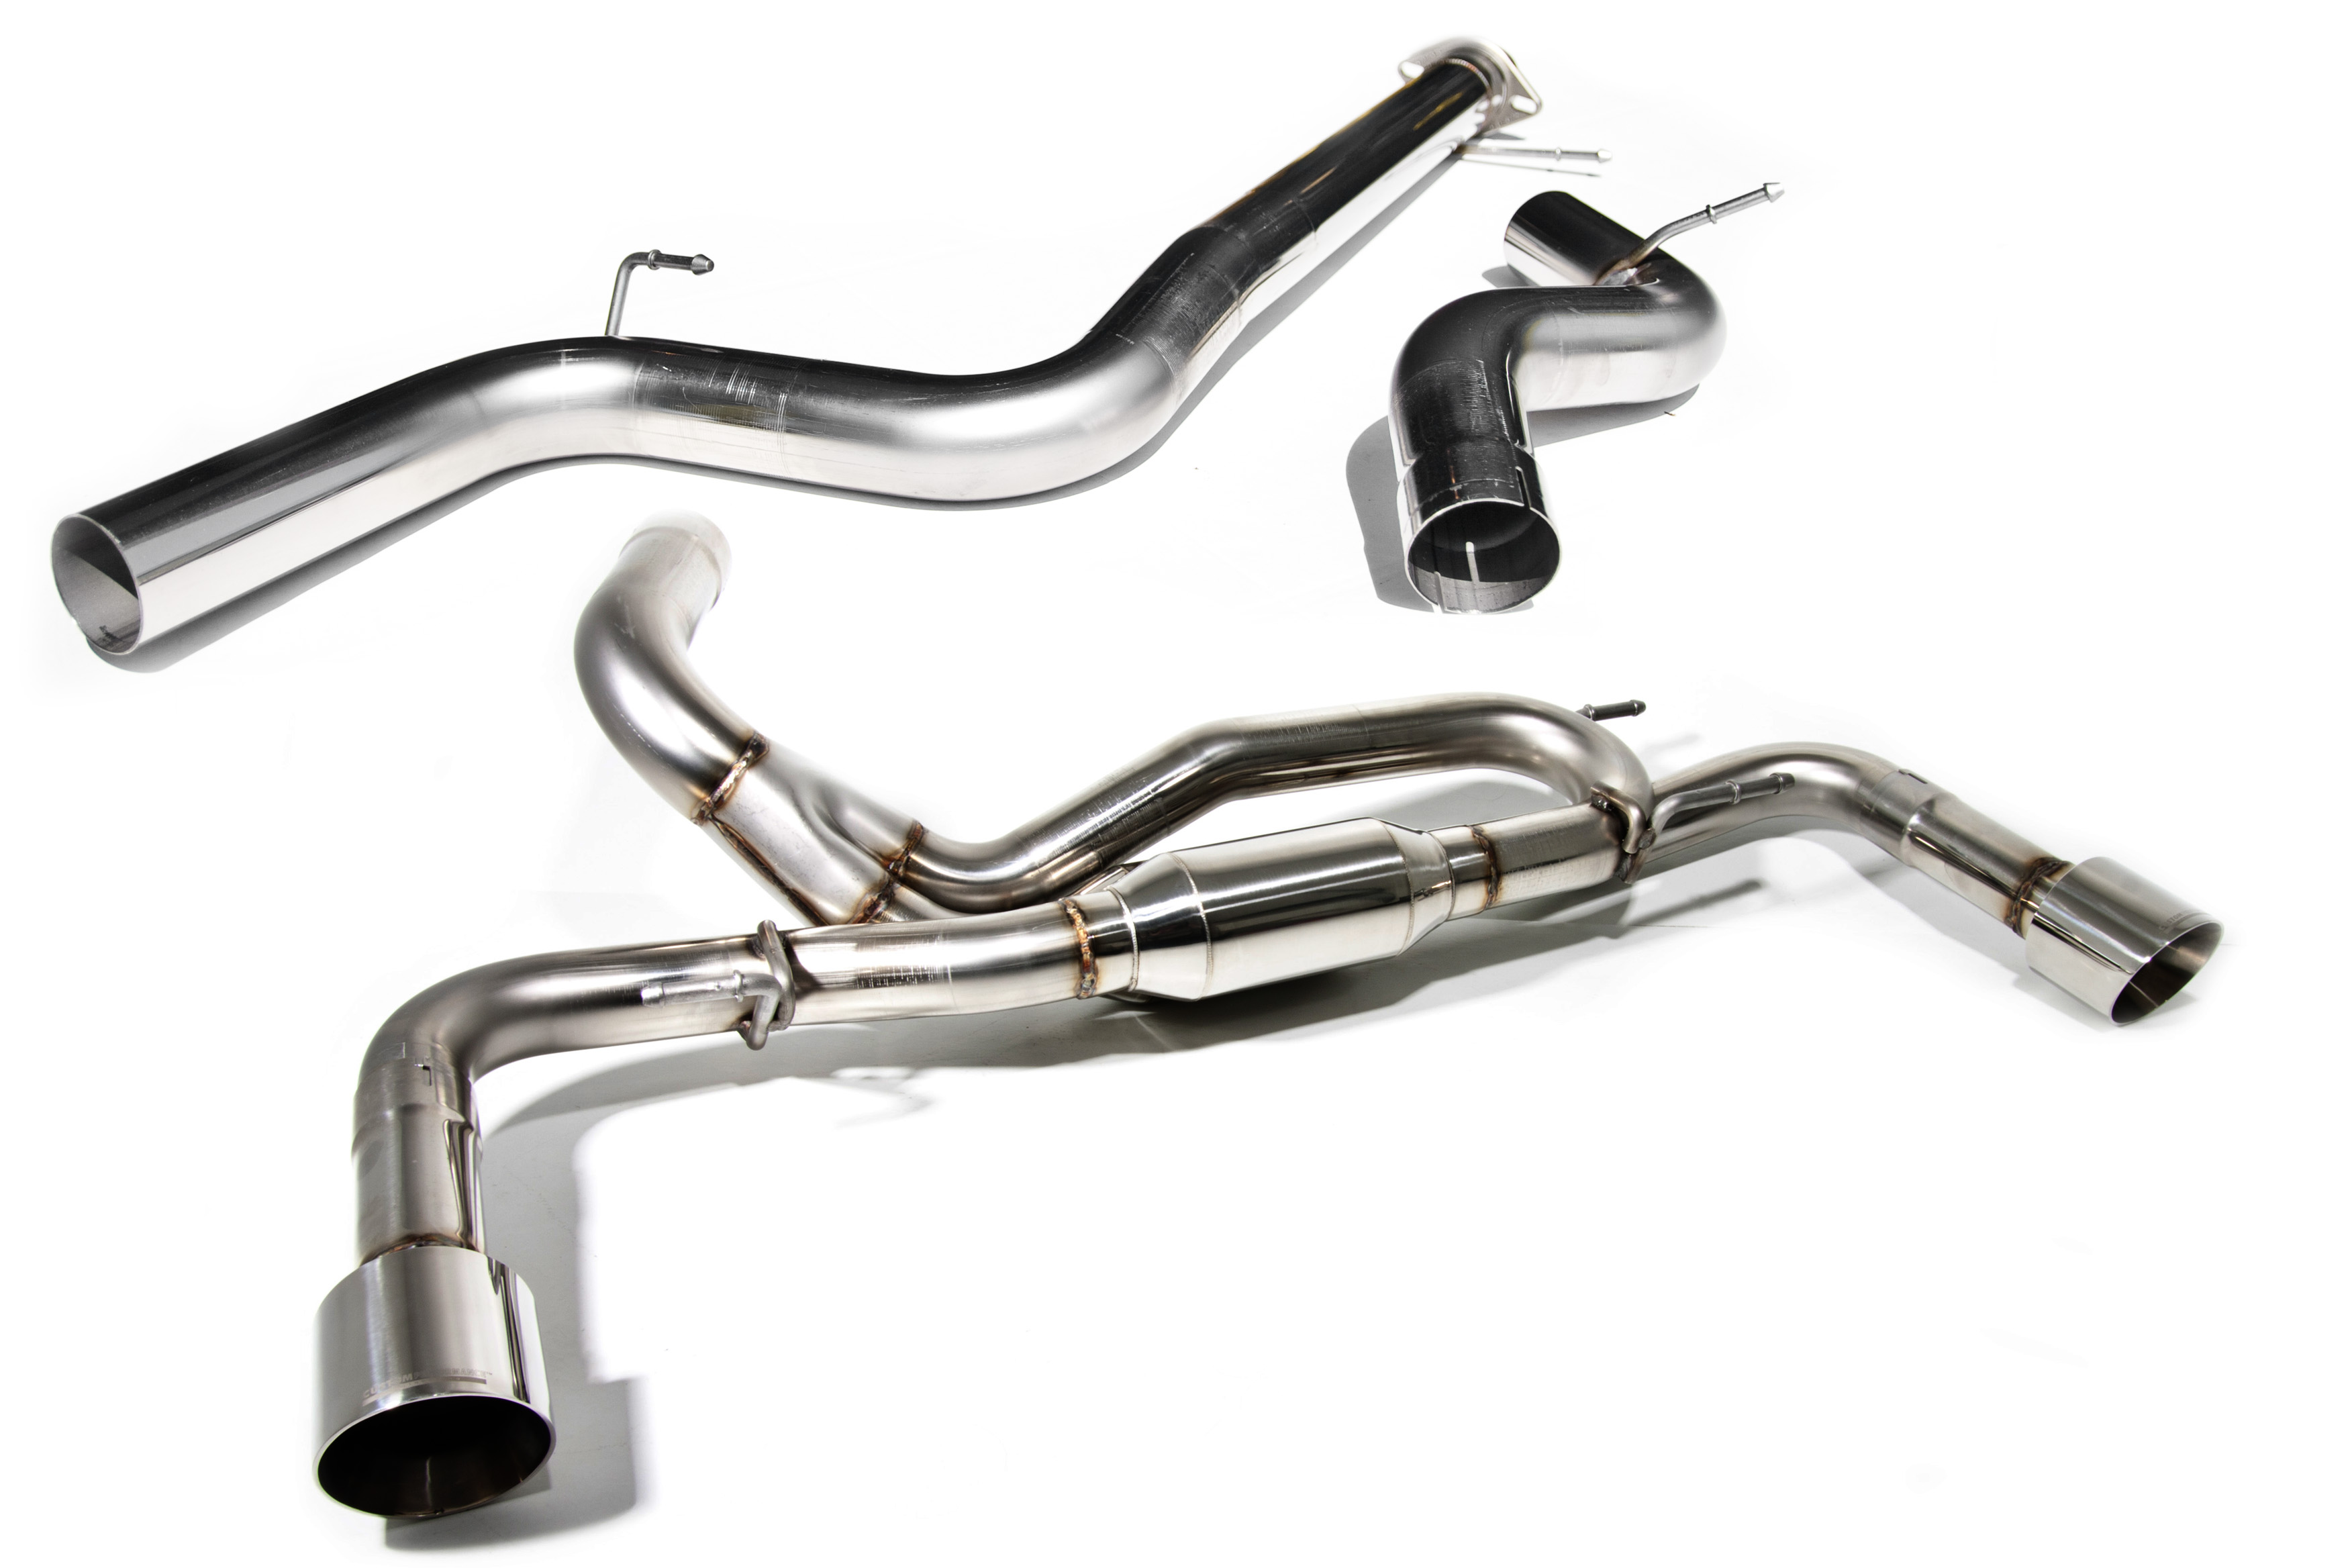 CPE Triton 3-inch Cat-back Exhaust for Gen2 Mazdaspeed 3